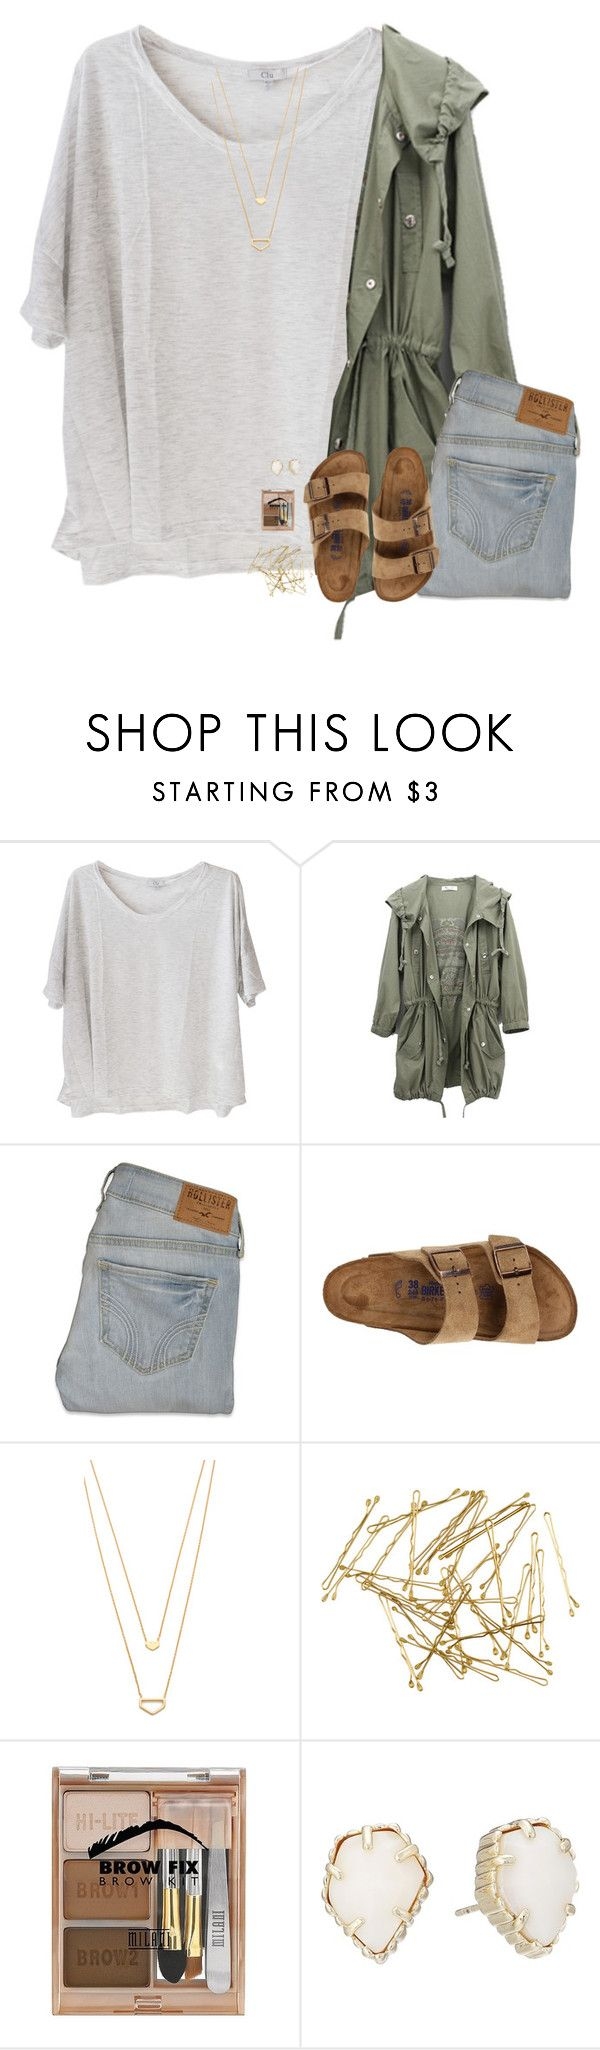 """""""Kind if similar ootd// first xc meet today!"""" by pineappleprincess1012 ❤ liked on Polyvore featuring Clu, Hollister Co., Birkenstock, Gorjana, H&M, Milani and Kendra Scott"""